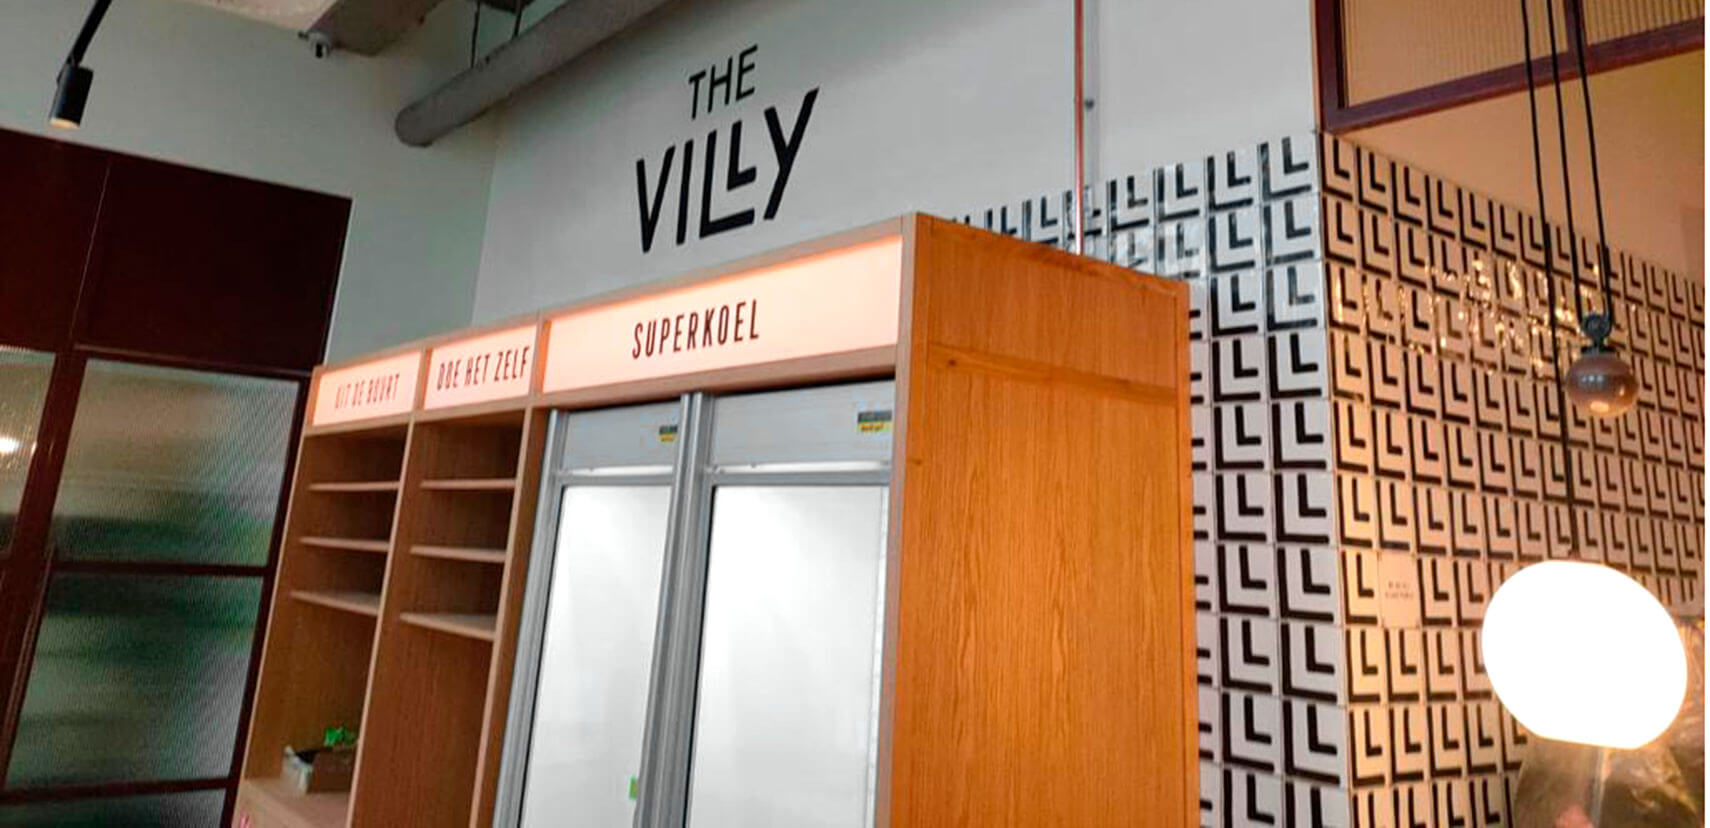 The Villy